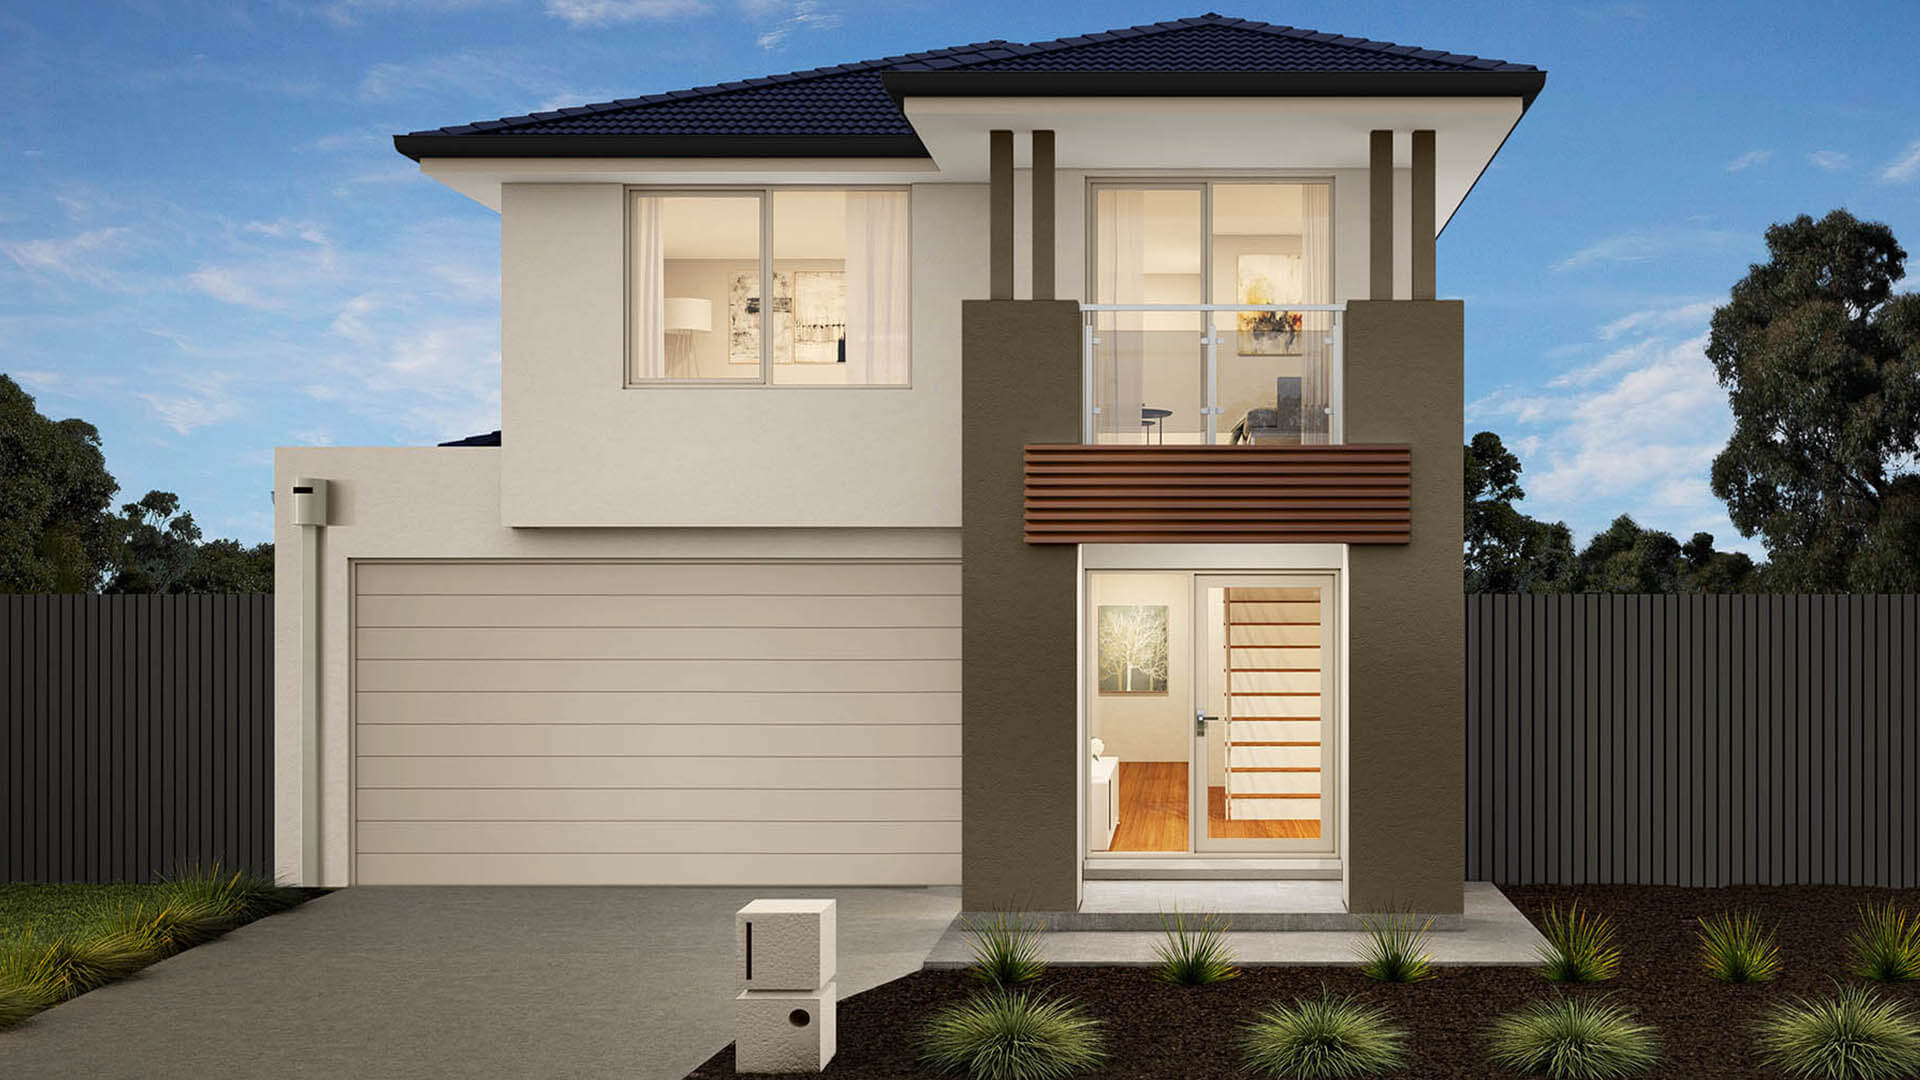 EASYLIVING CHEVAL NAPLES 10.5 (HEBEL) Exterior Image 1